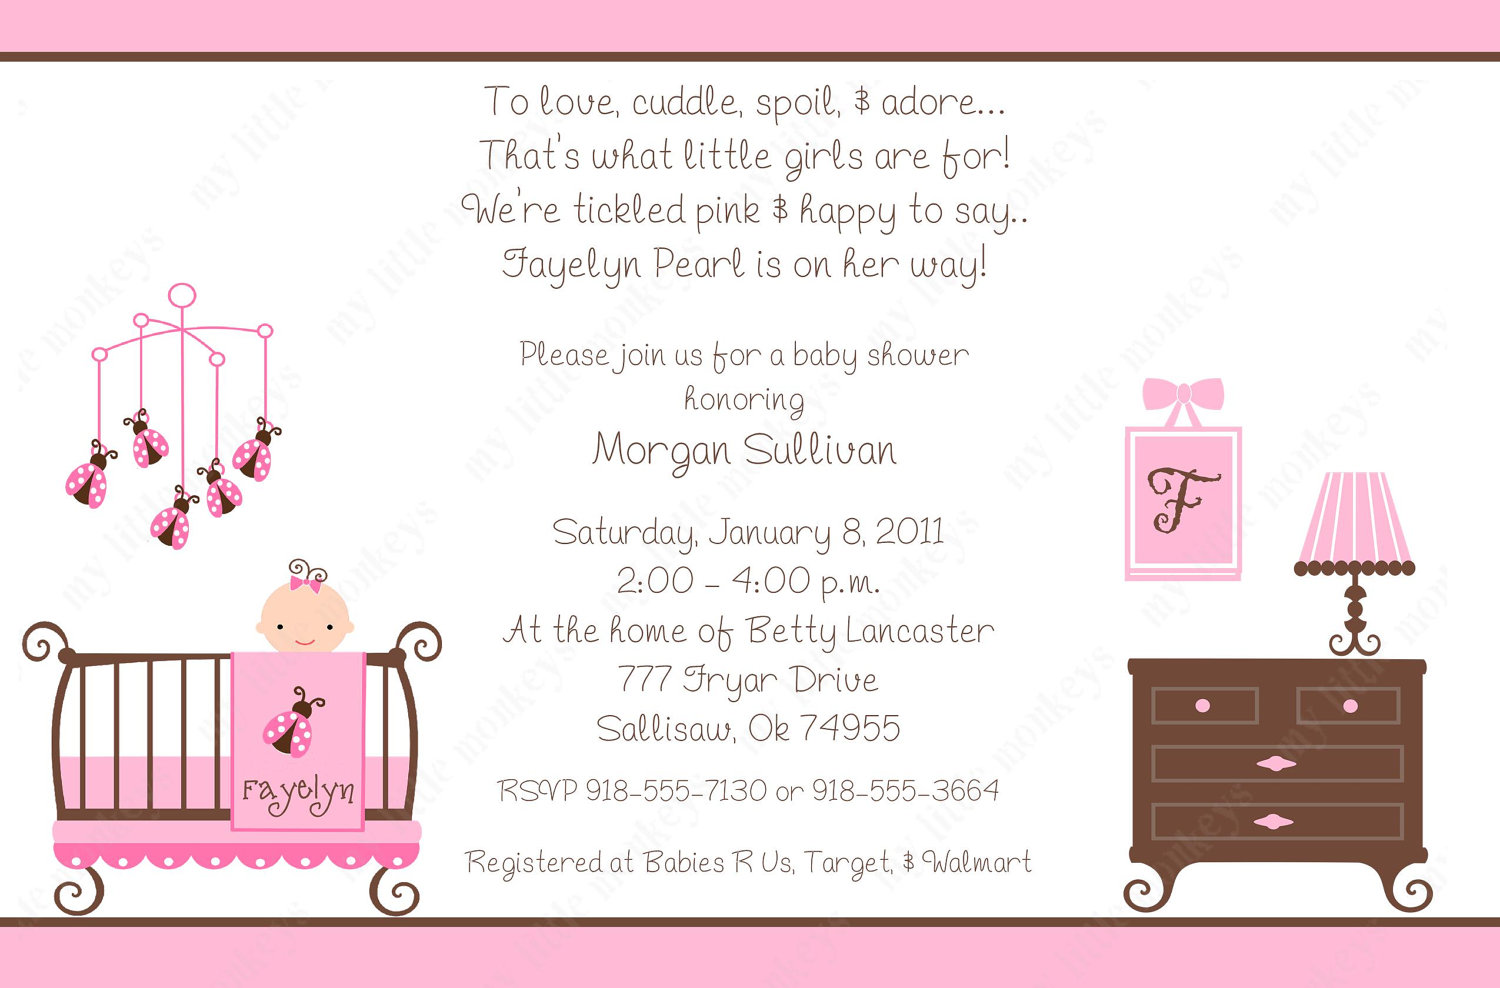 Full Size of Baby Shower:baby Shower Invitations For Boys Homemade Baby Shower Decorations Baby Shower Ideas Nursery Themes For Girls Baby Girl Themes For Baby Shower Baby Shower Themes Baby Shower Ideas Baby Shower Decorations Printable Baby Shower Invitations For Girl